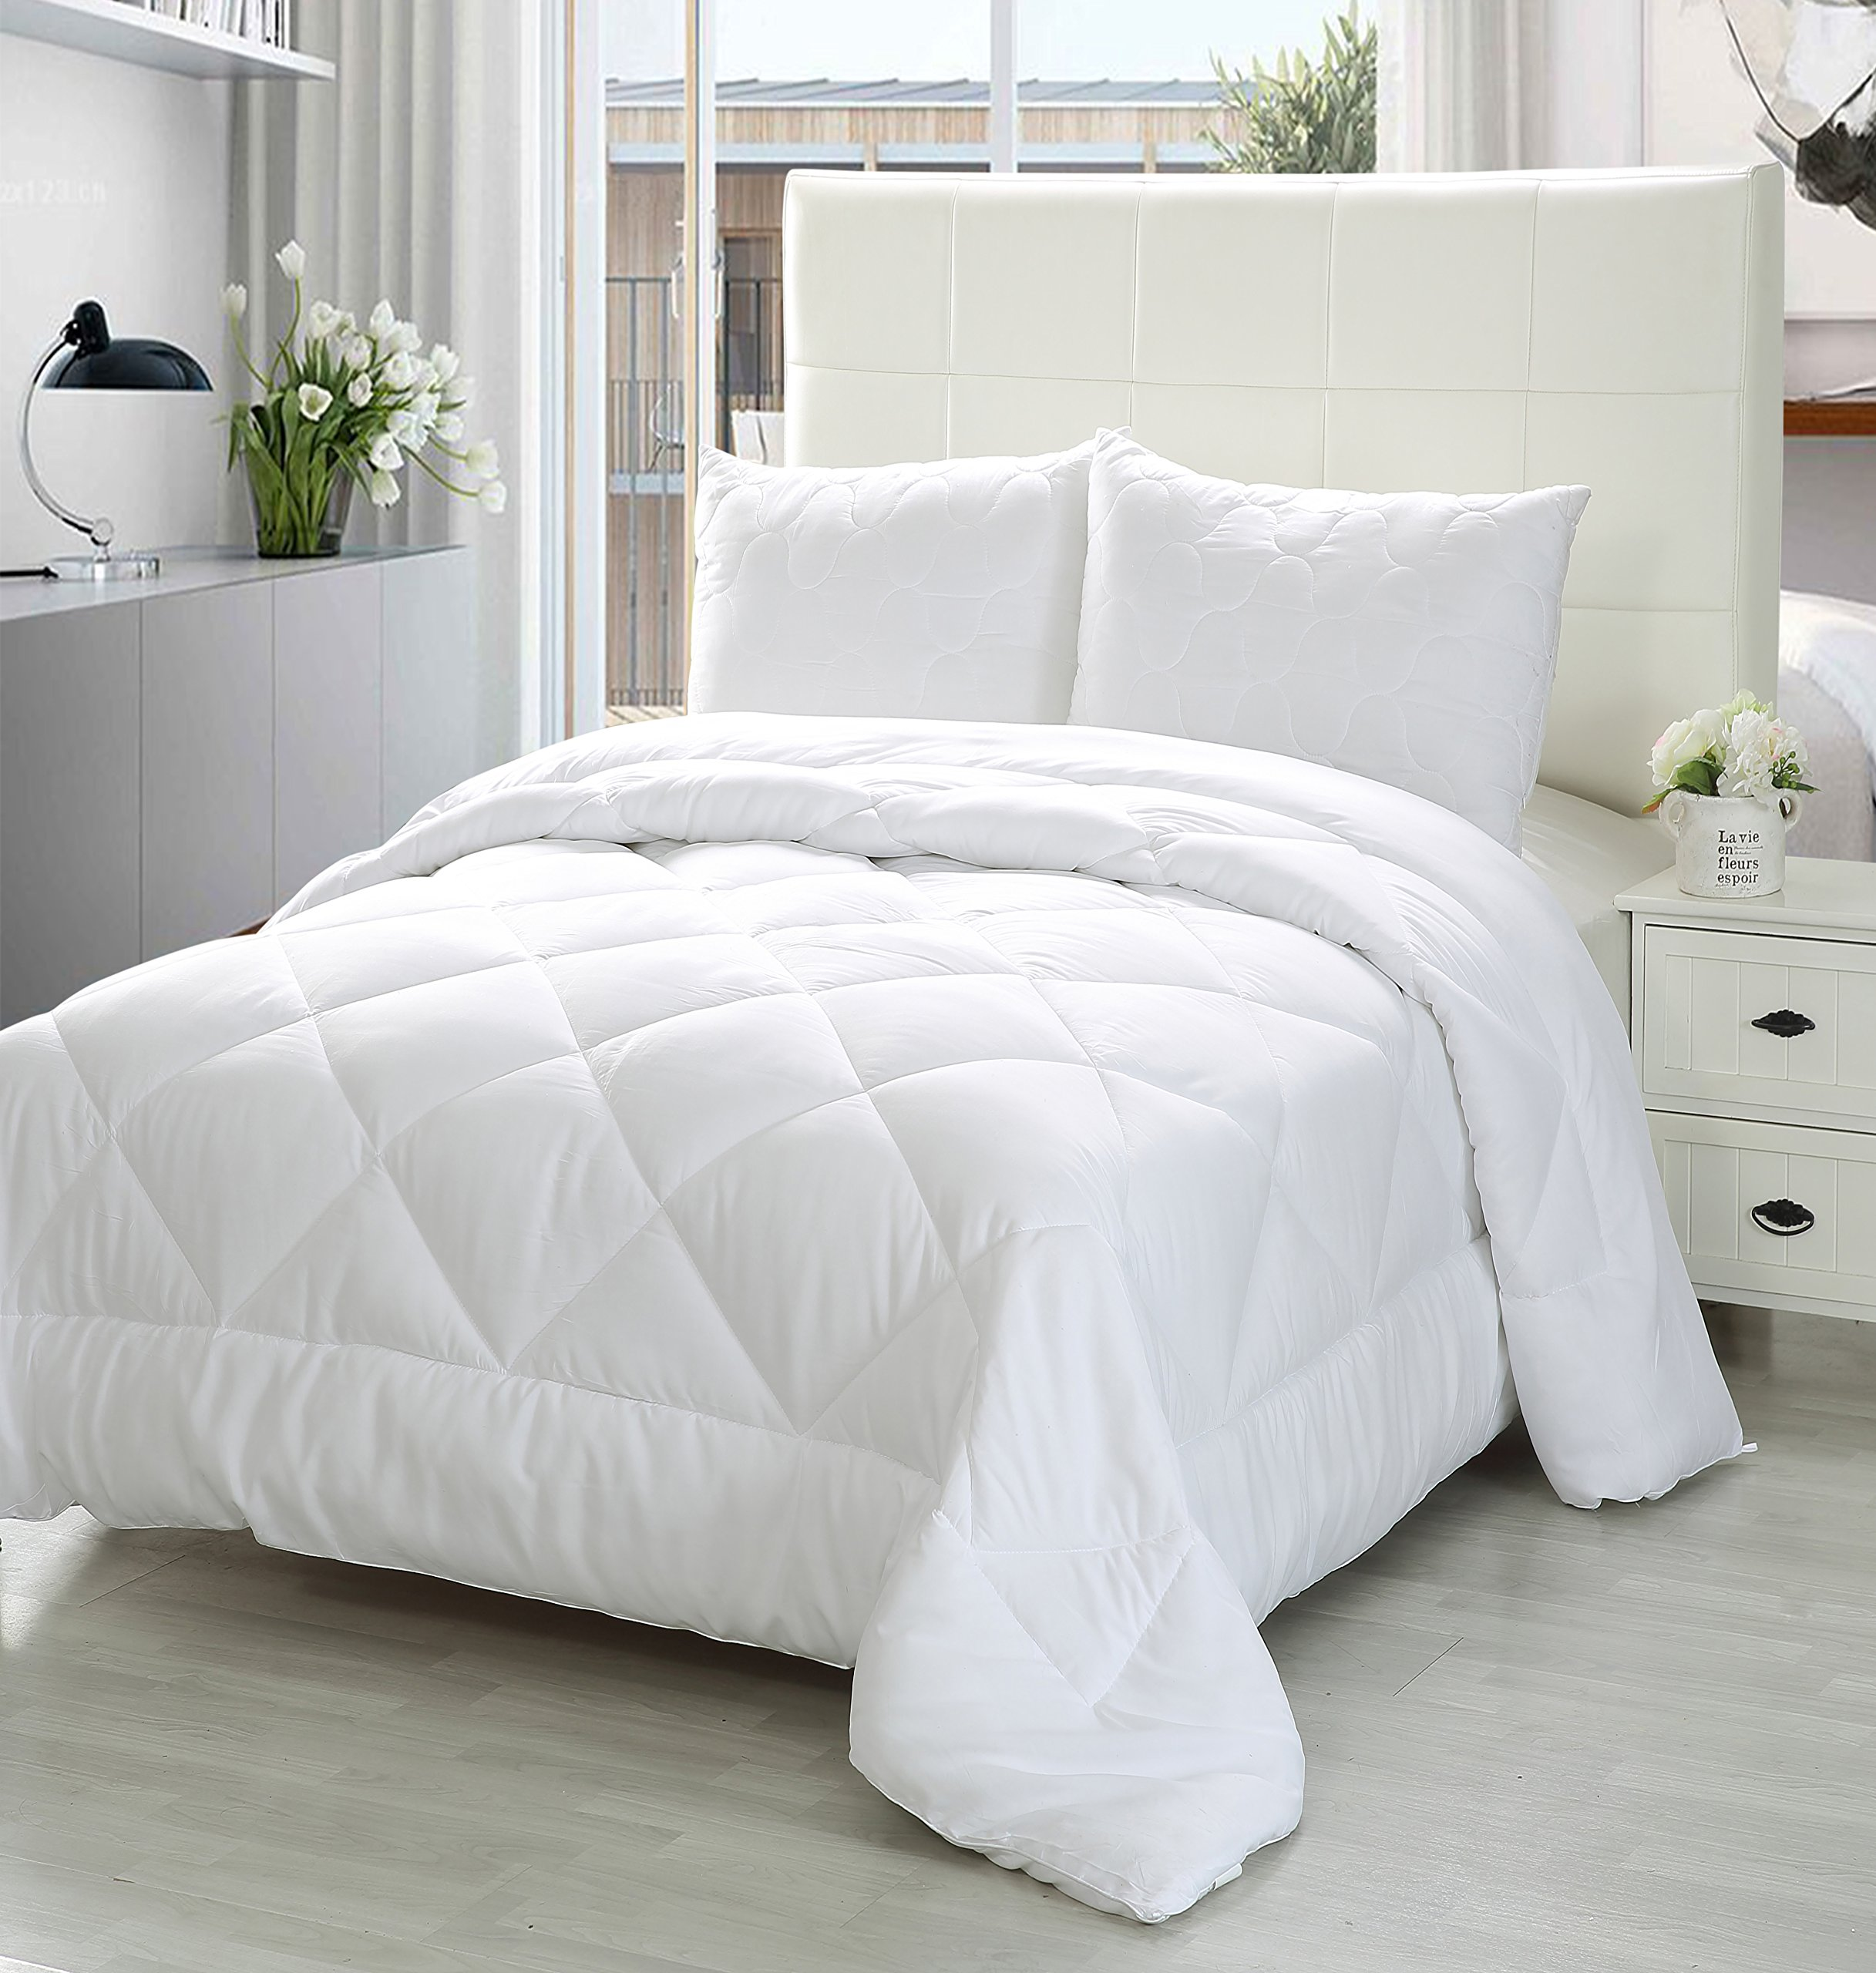 fill power a shipping to down today free buy cotton overstock woolrich product bath how comforter oversized bedding